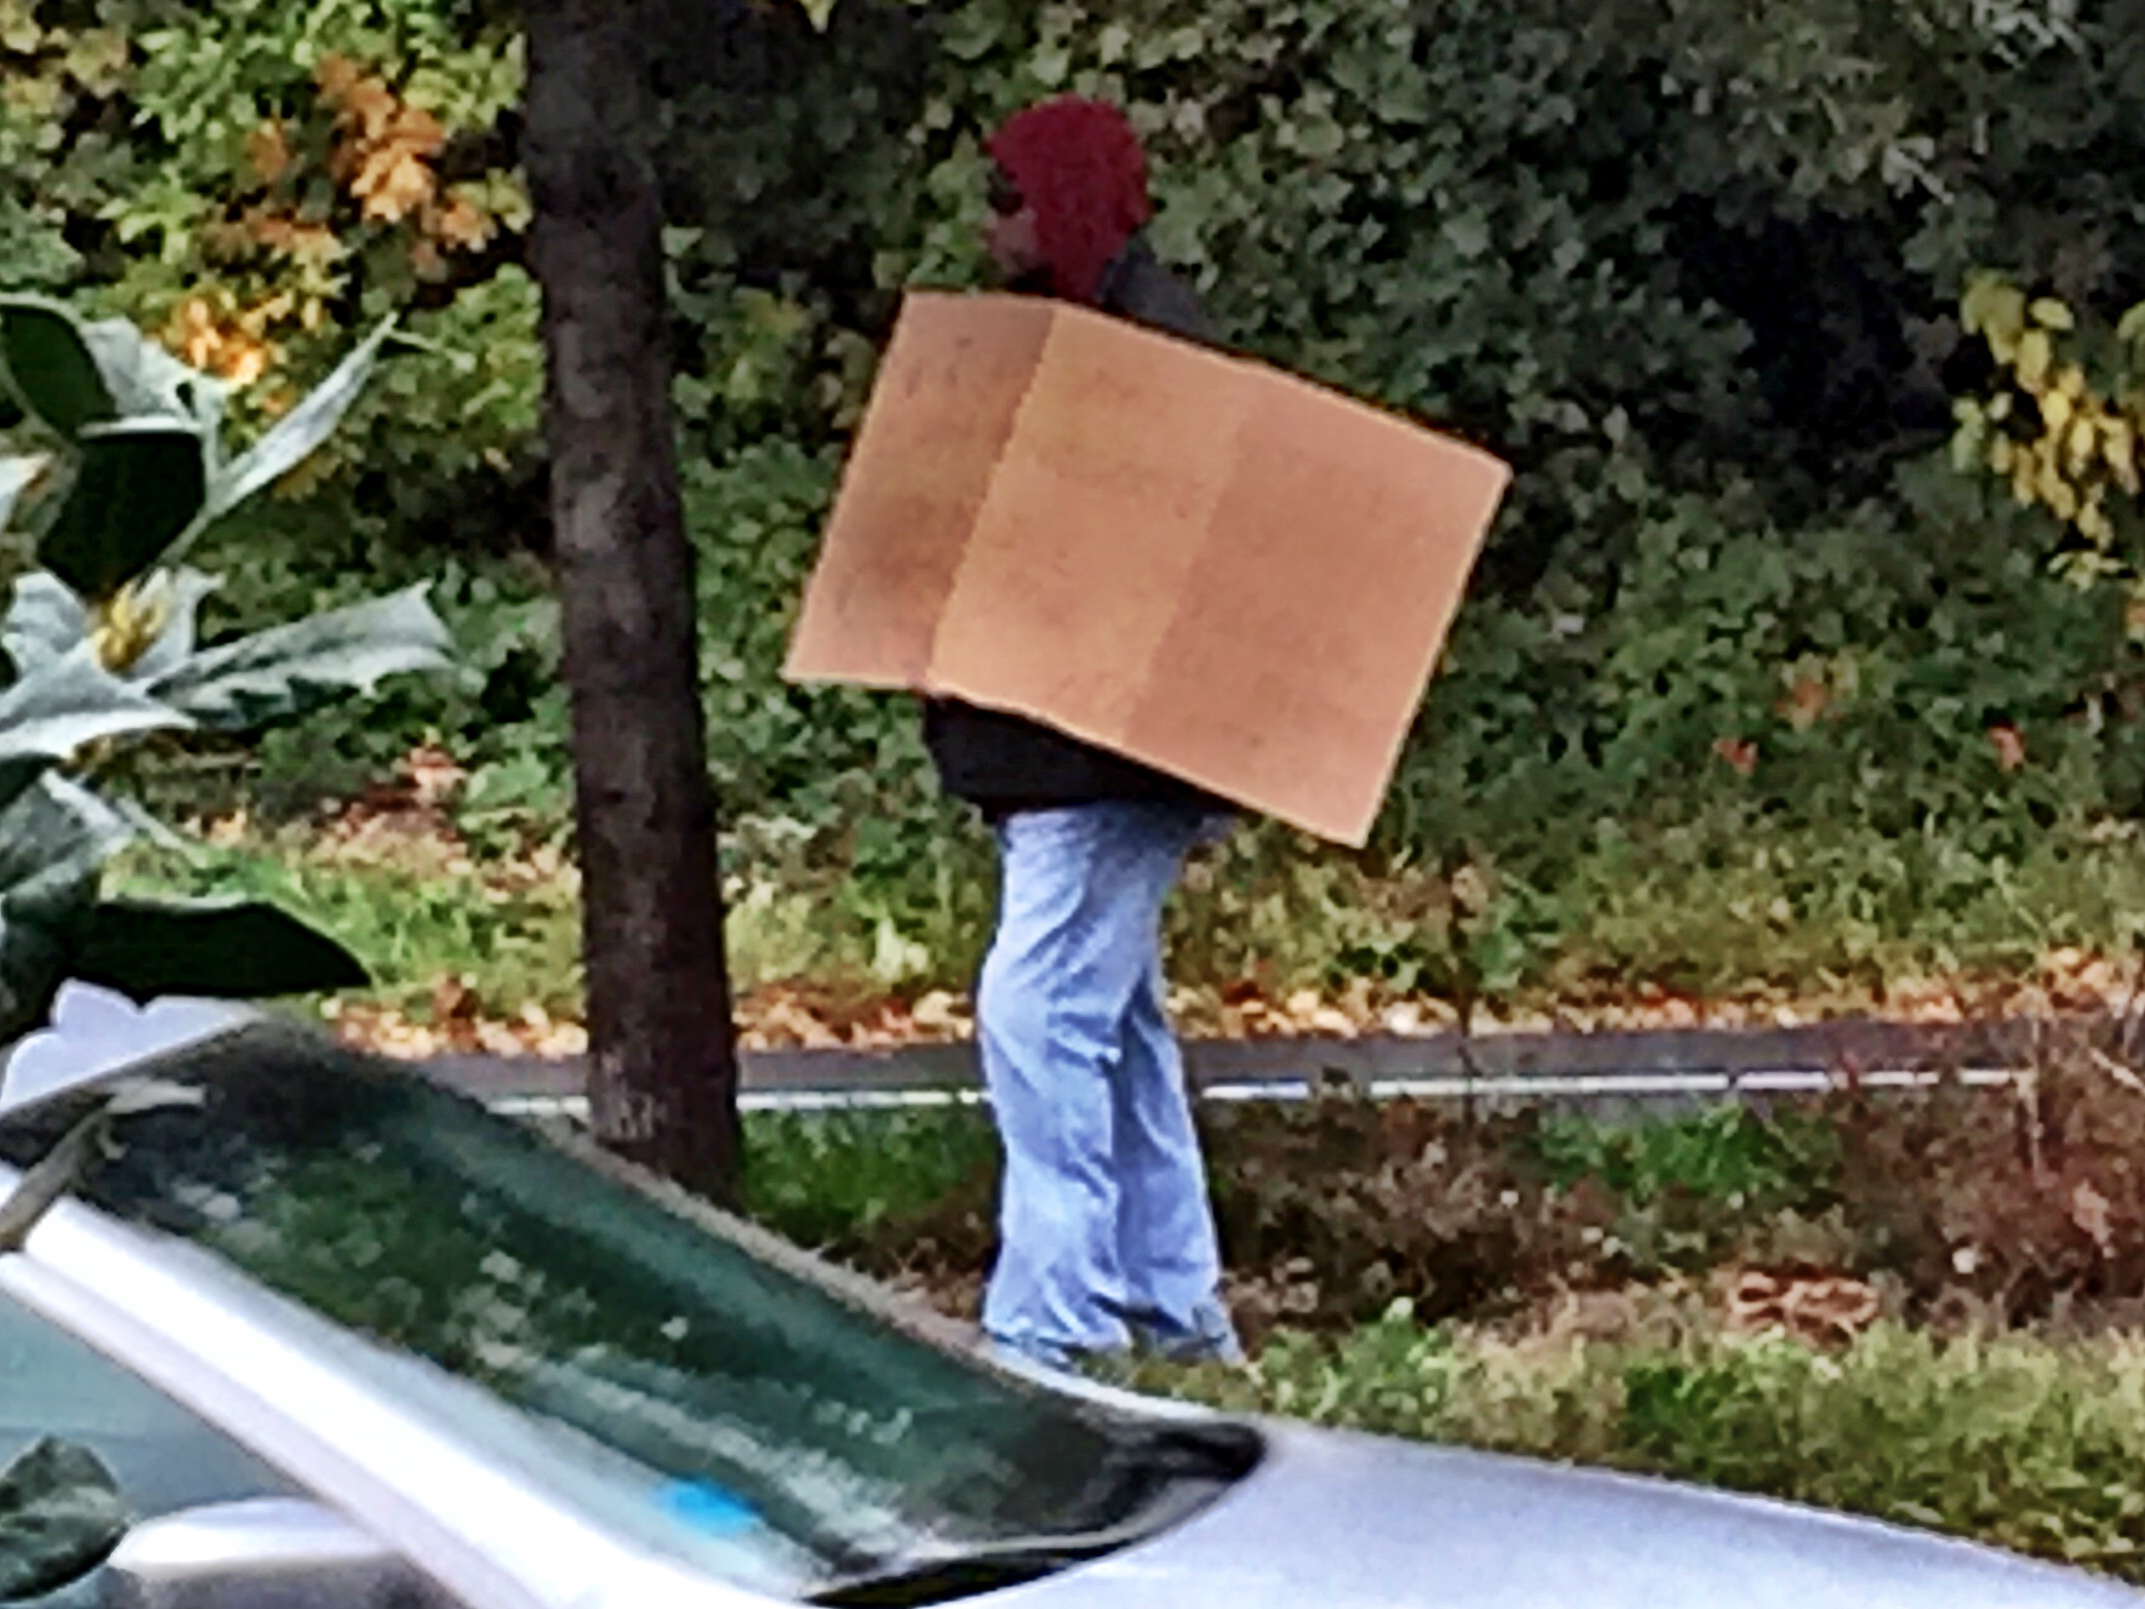 Police use homeless man disguise to catch drivers texting